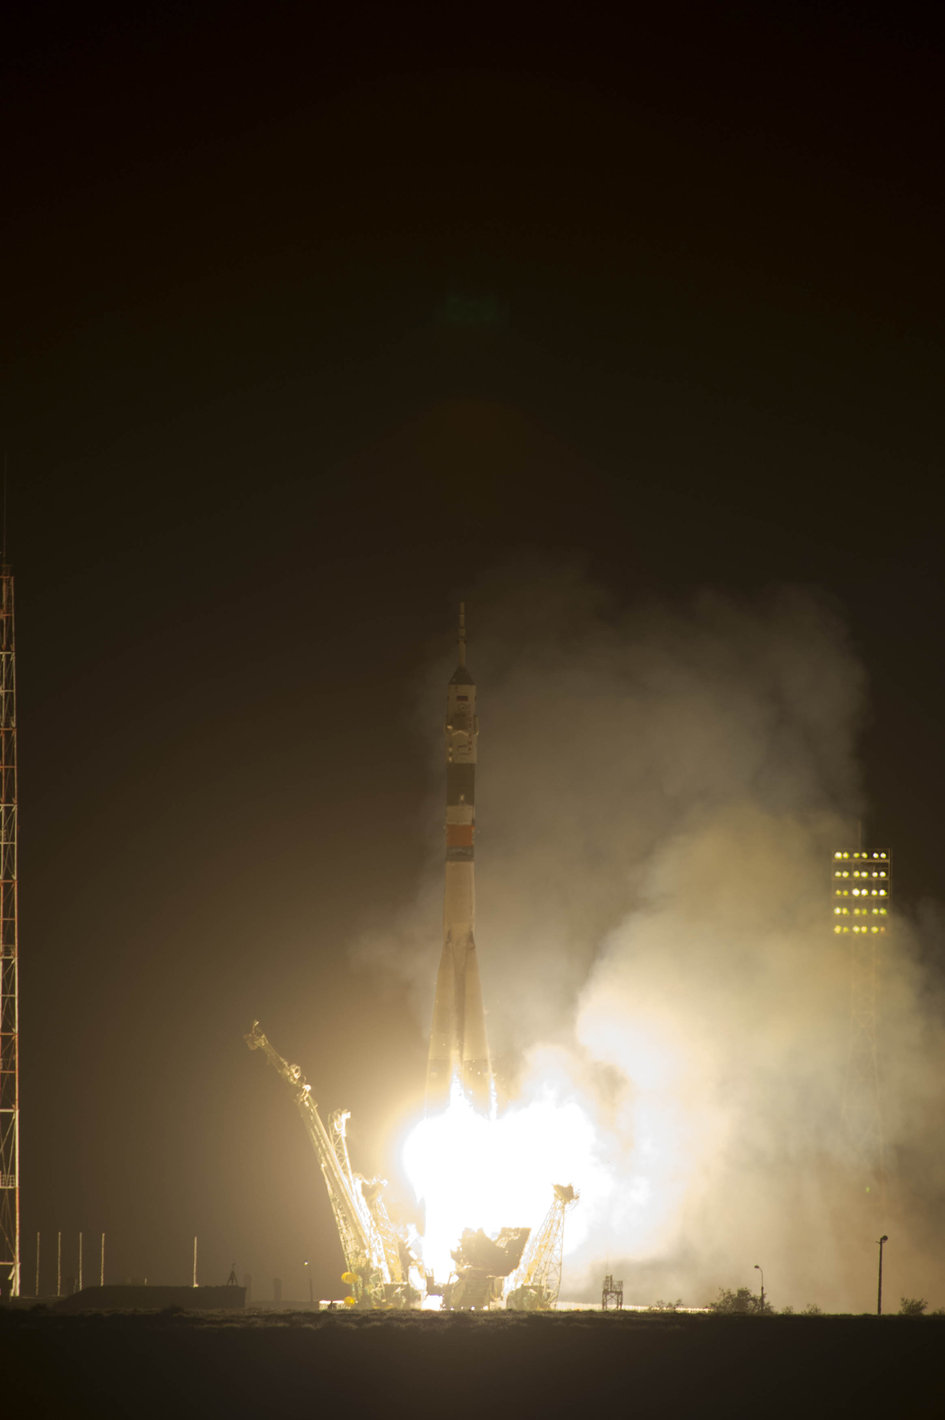 Liftoff of Soyuz TMA-13M on 28 May 2014